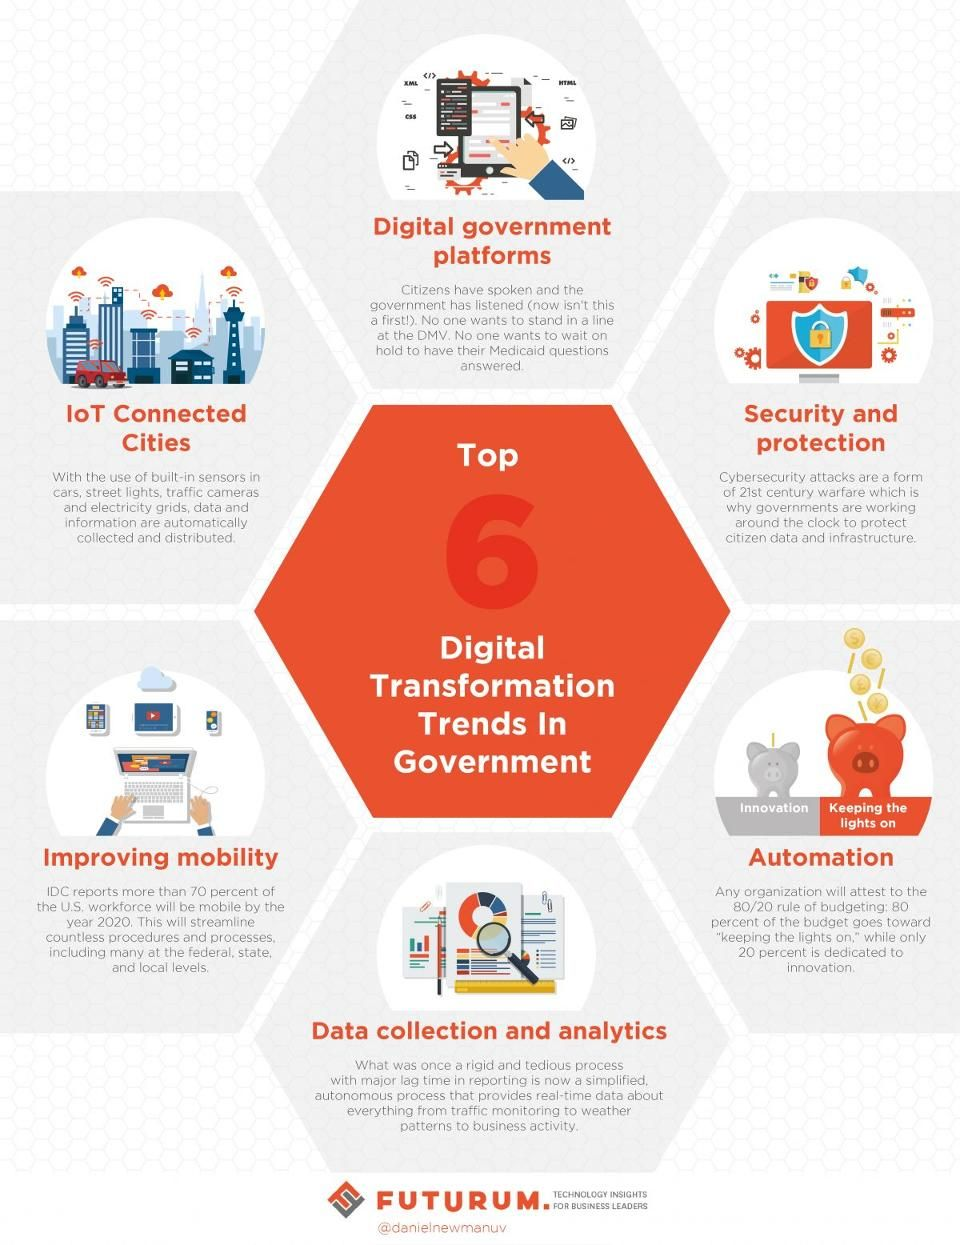 Top 6 Digital Transformation Trends In Government